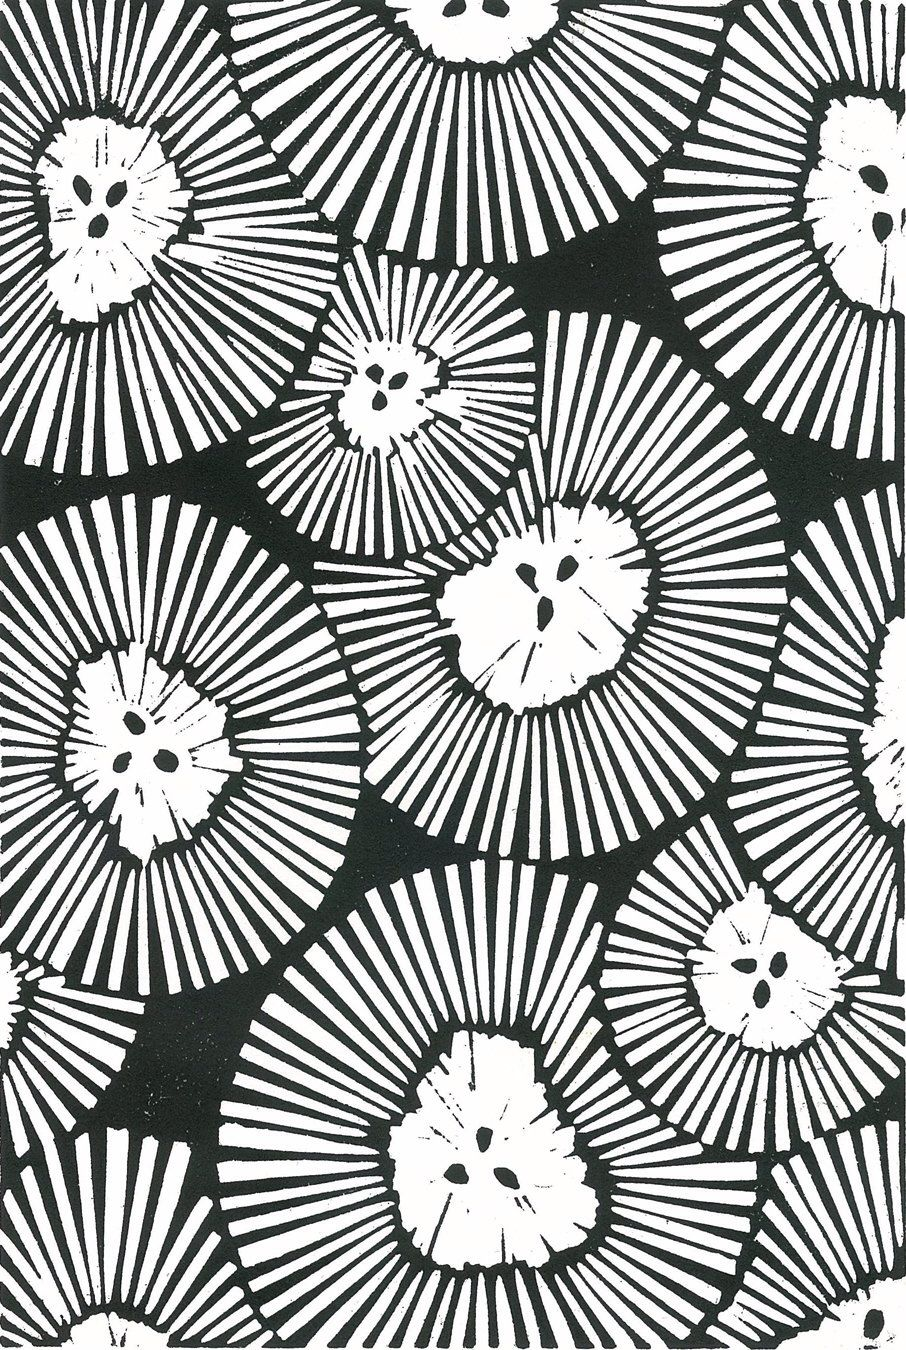 Chrysanthemums lino print black white abstract flower print chrysanthemums lino print black white abstract flower print 8x10 block print ready to ship mightylinksfo Image collections